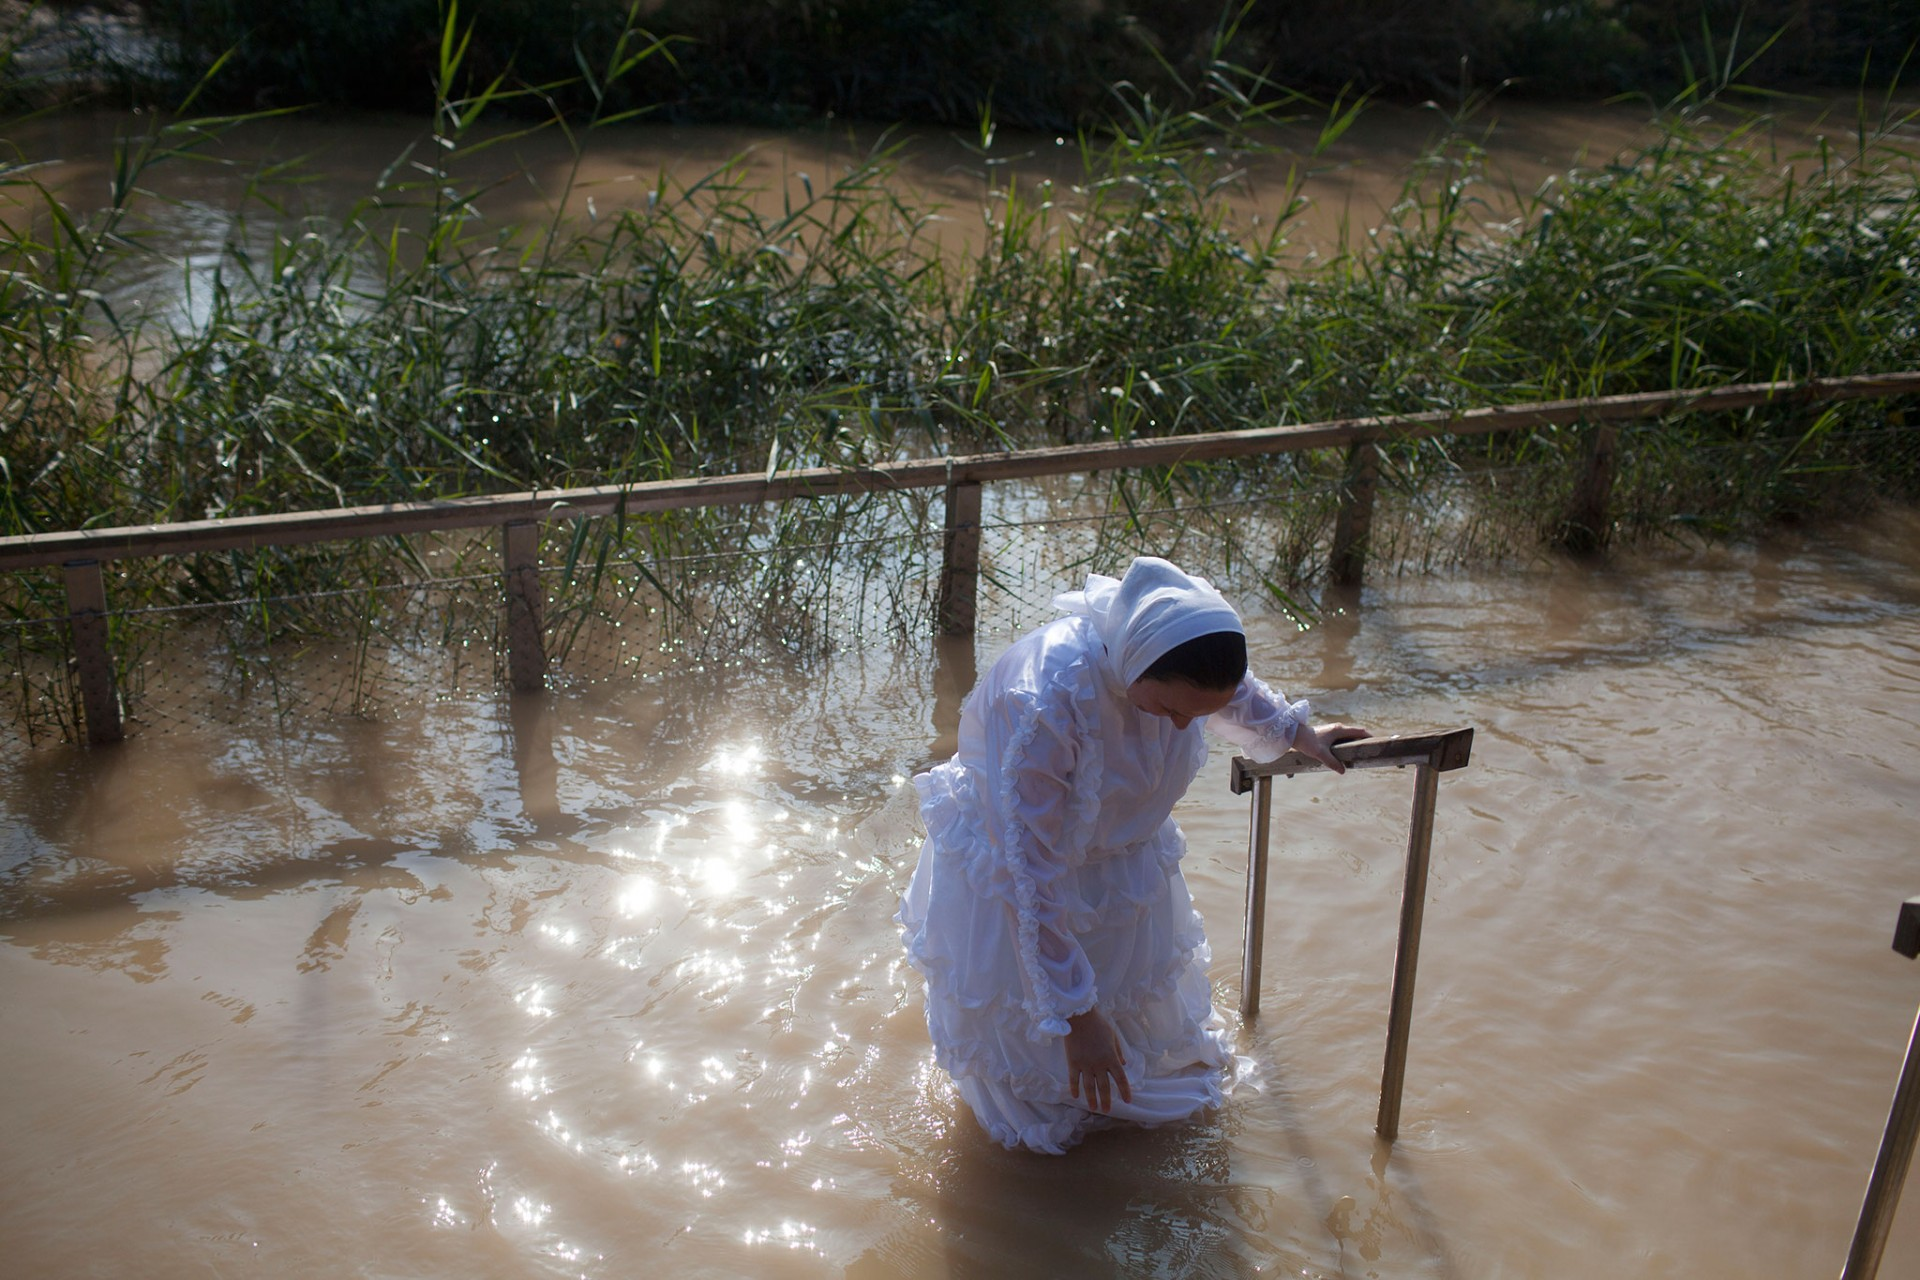 Epiphany celebrations in the Jordan River, Qasir al-Yahud 2015